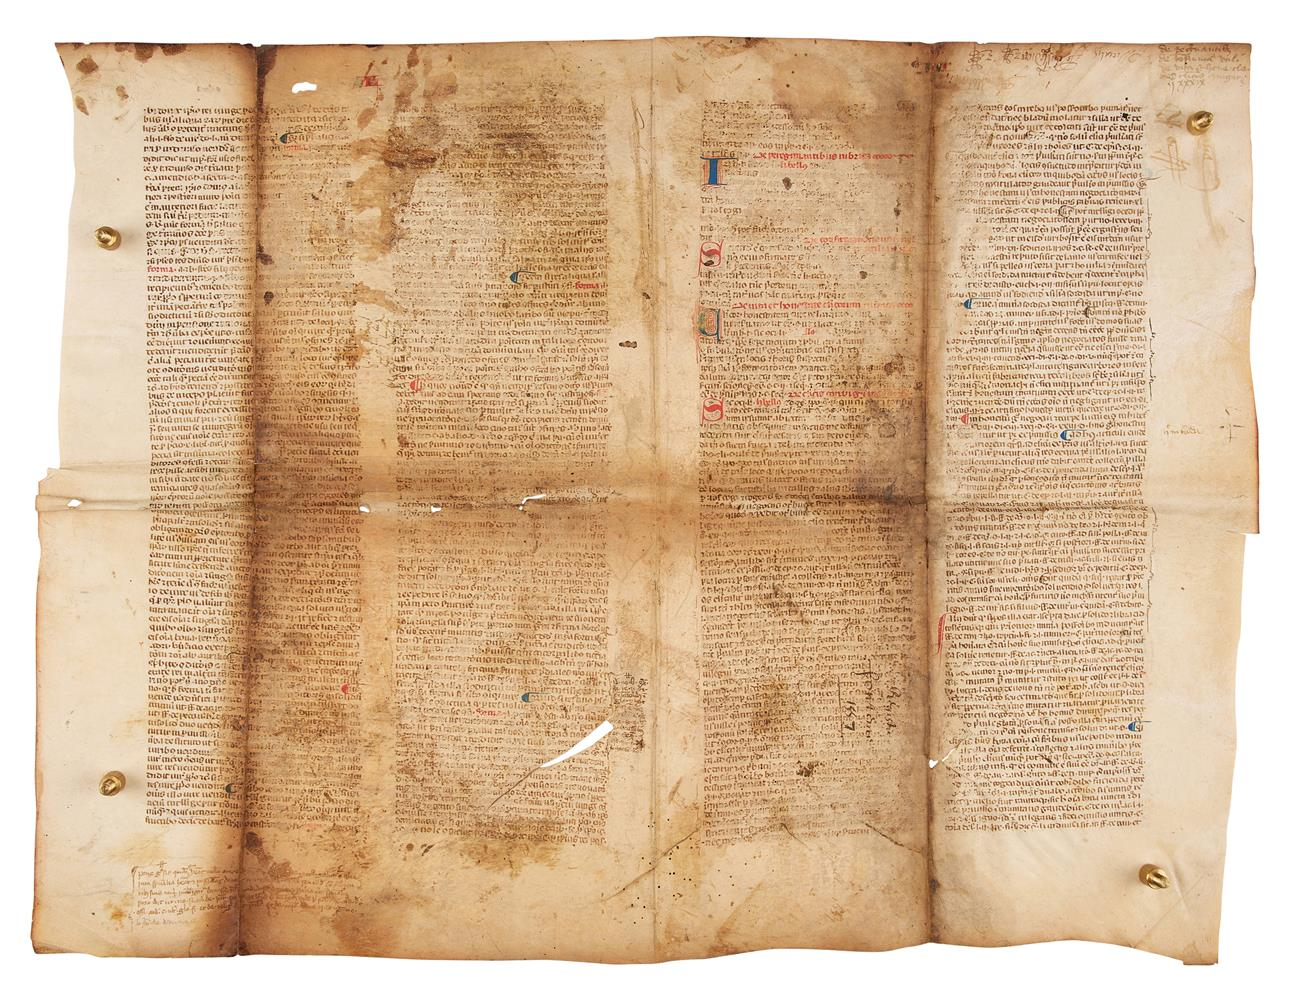 Collection of leaves from legal manuscripts, in Latin, on parchment [thirteenth to fourteenth cen - Image 6 of 8